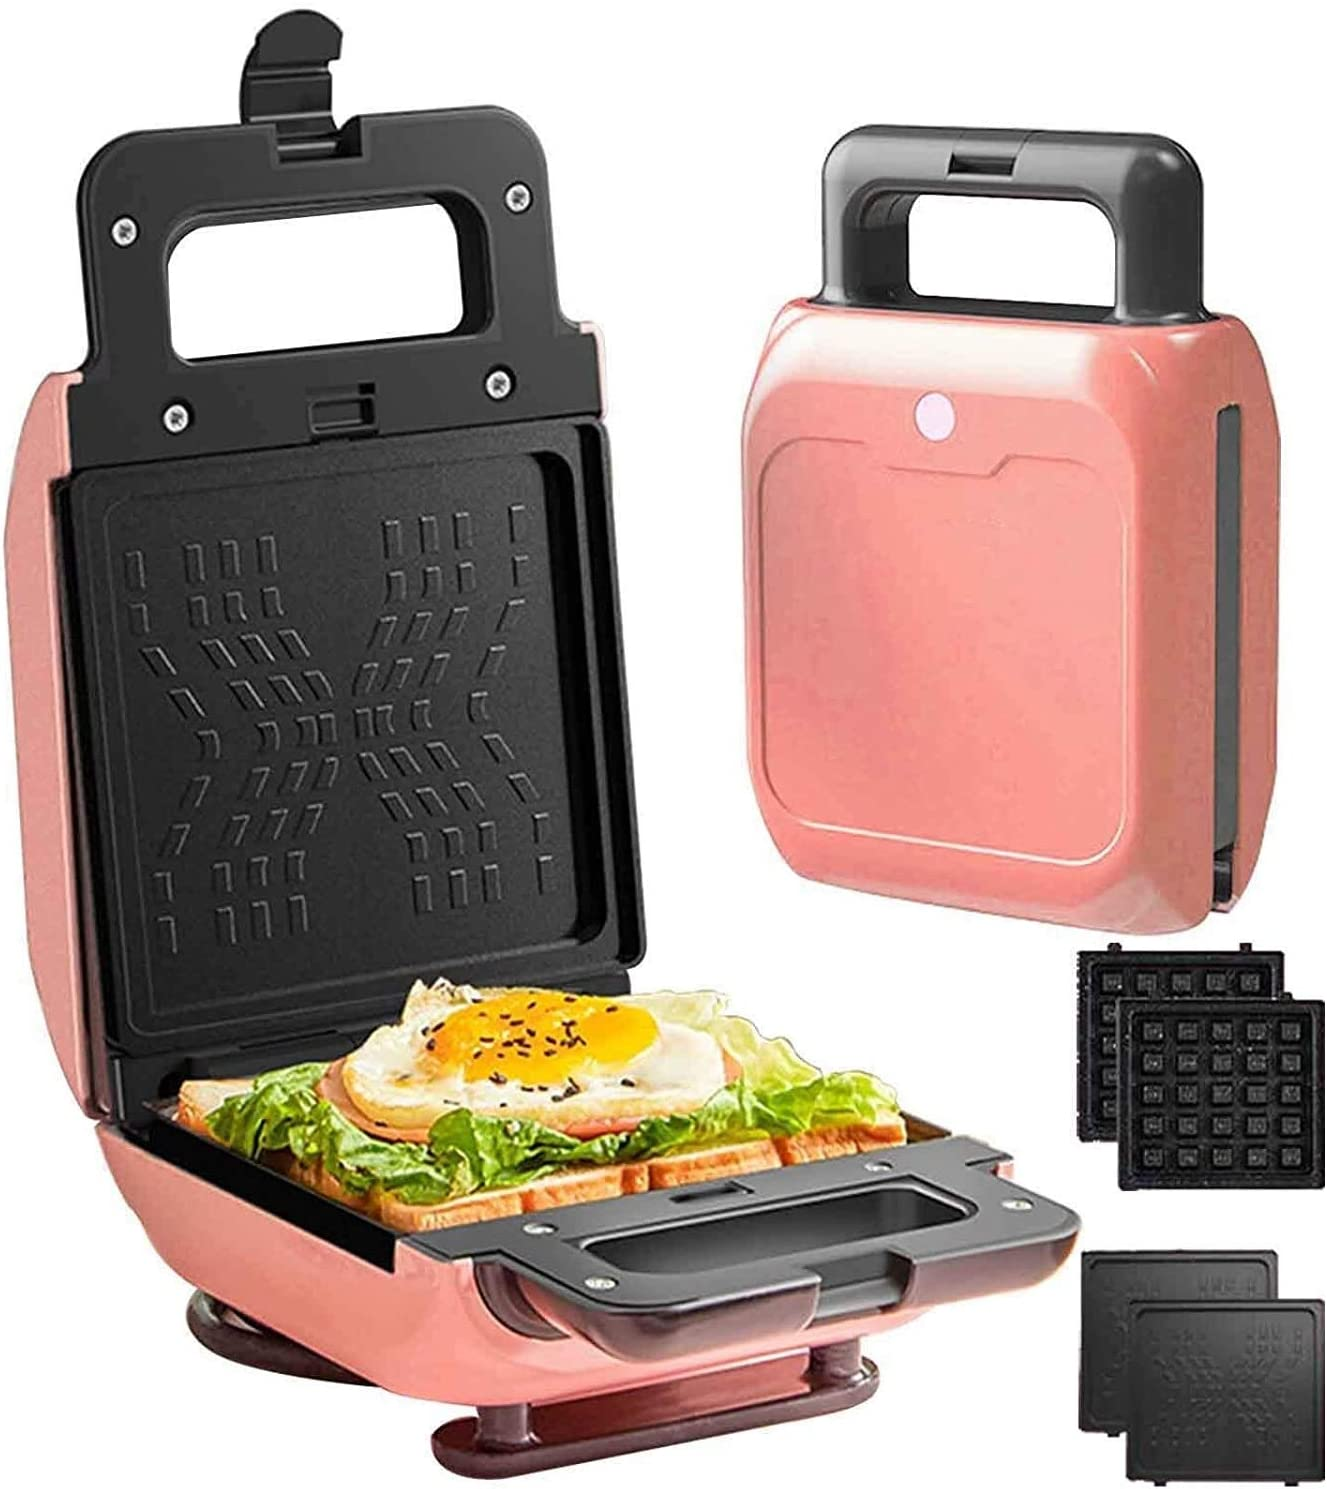 toasters Waffle Maker Challenge the lowest price Electric Max 59% OFF 2 Sandwich Toast 1 Iron in